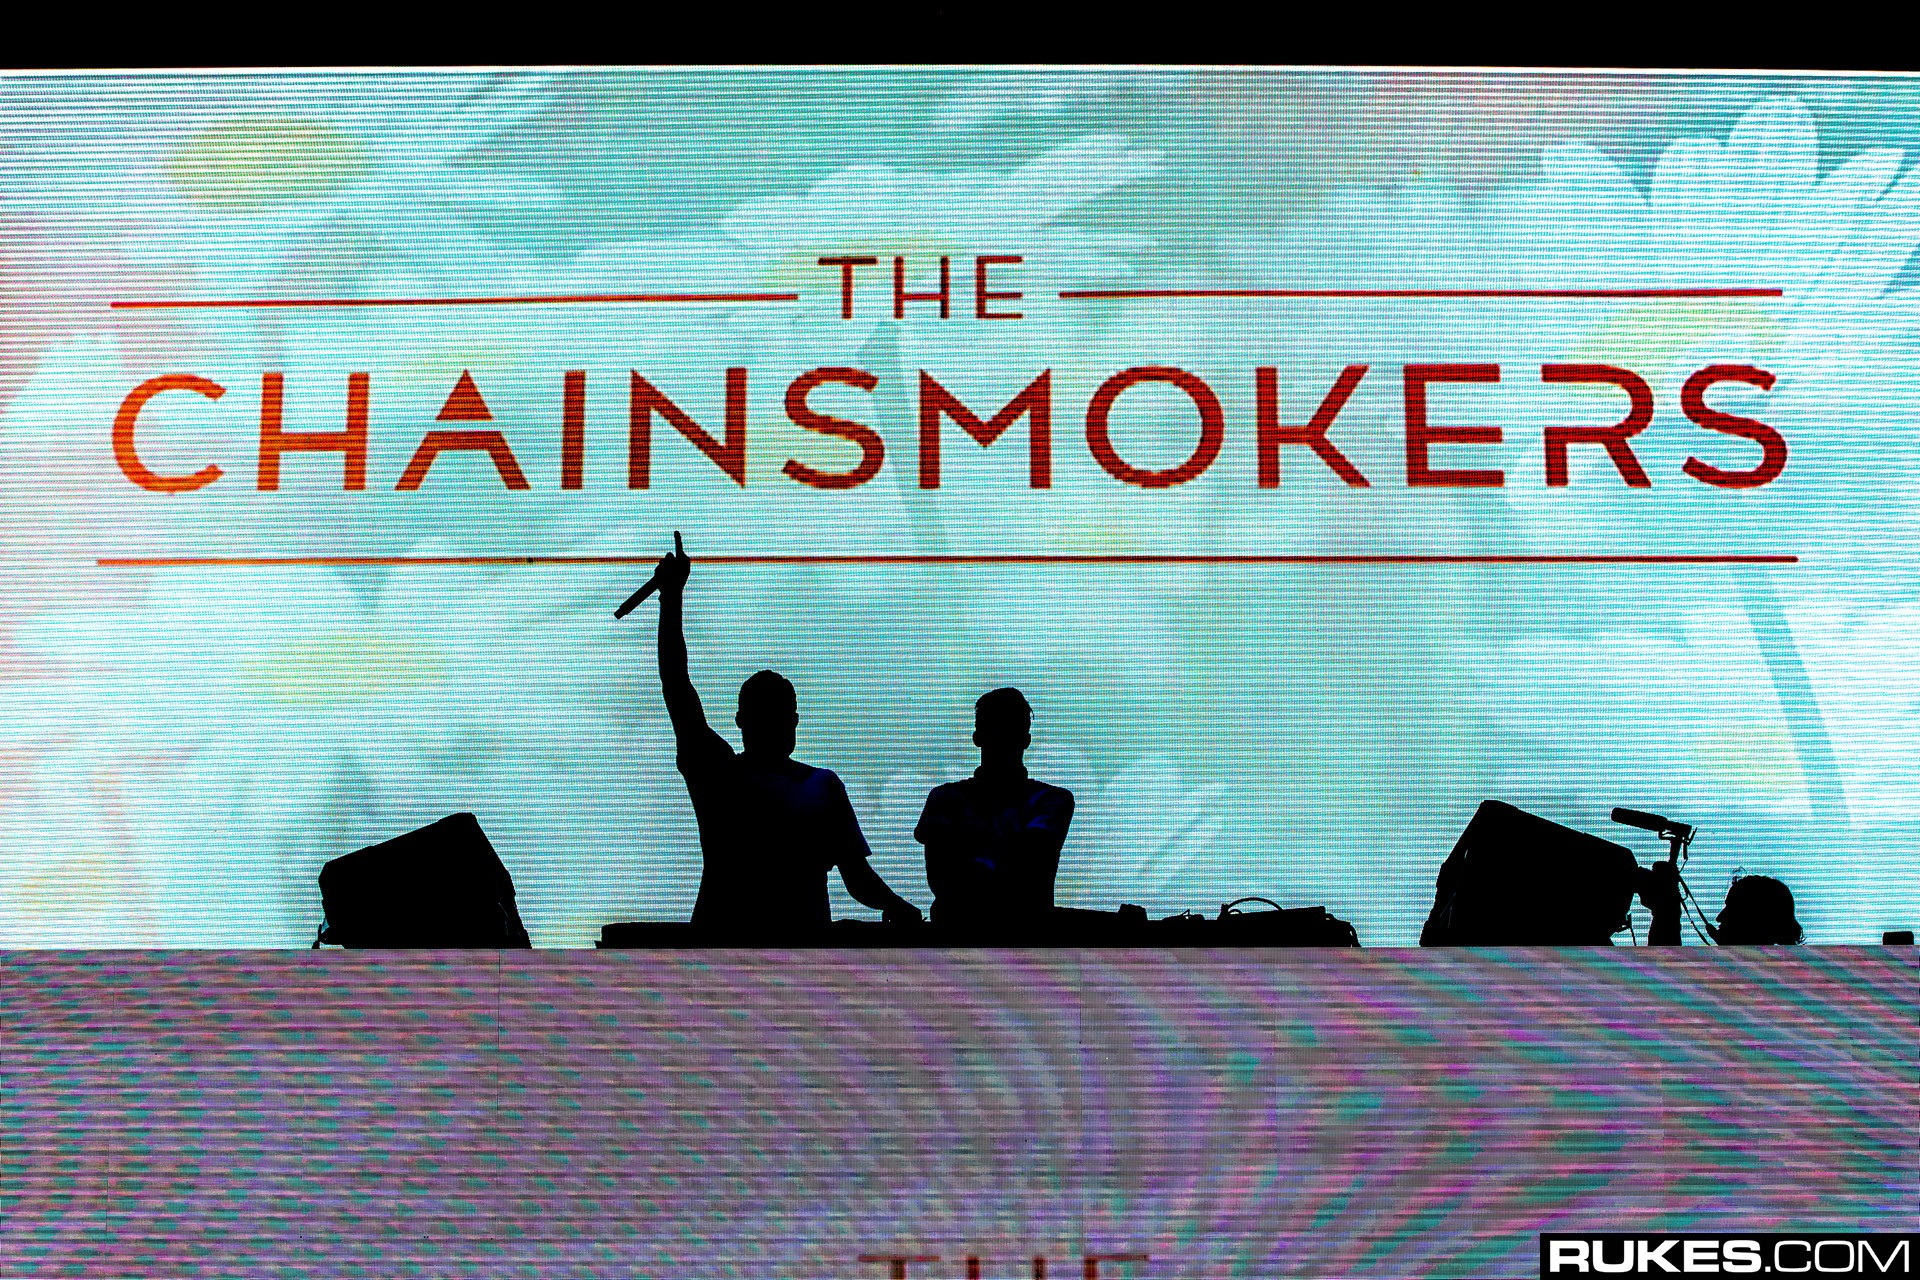 The chainsmokers prove diversity yet again with clean bandit remix malvernweather Image collections